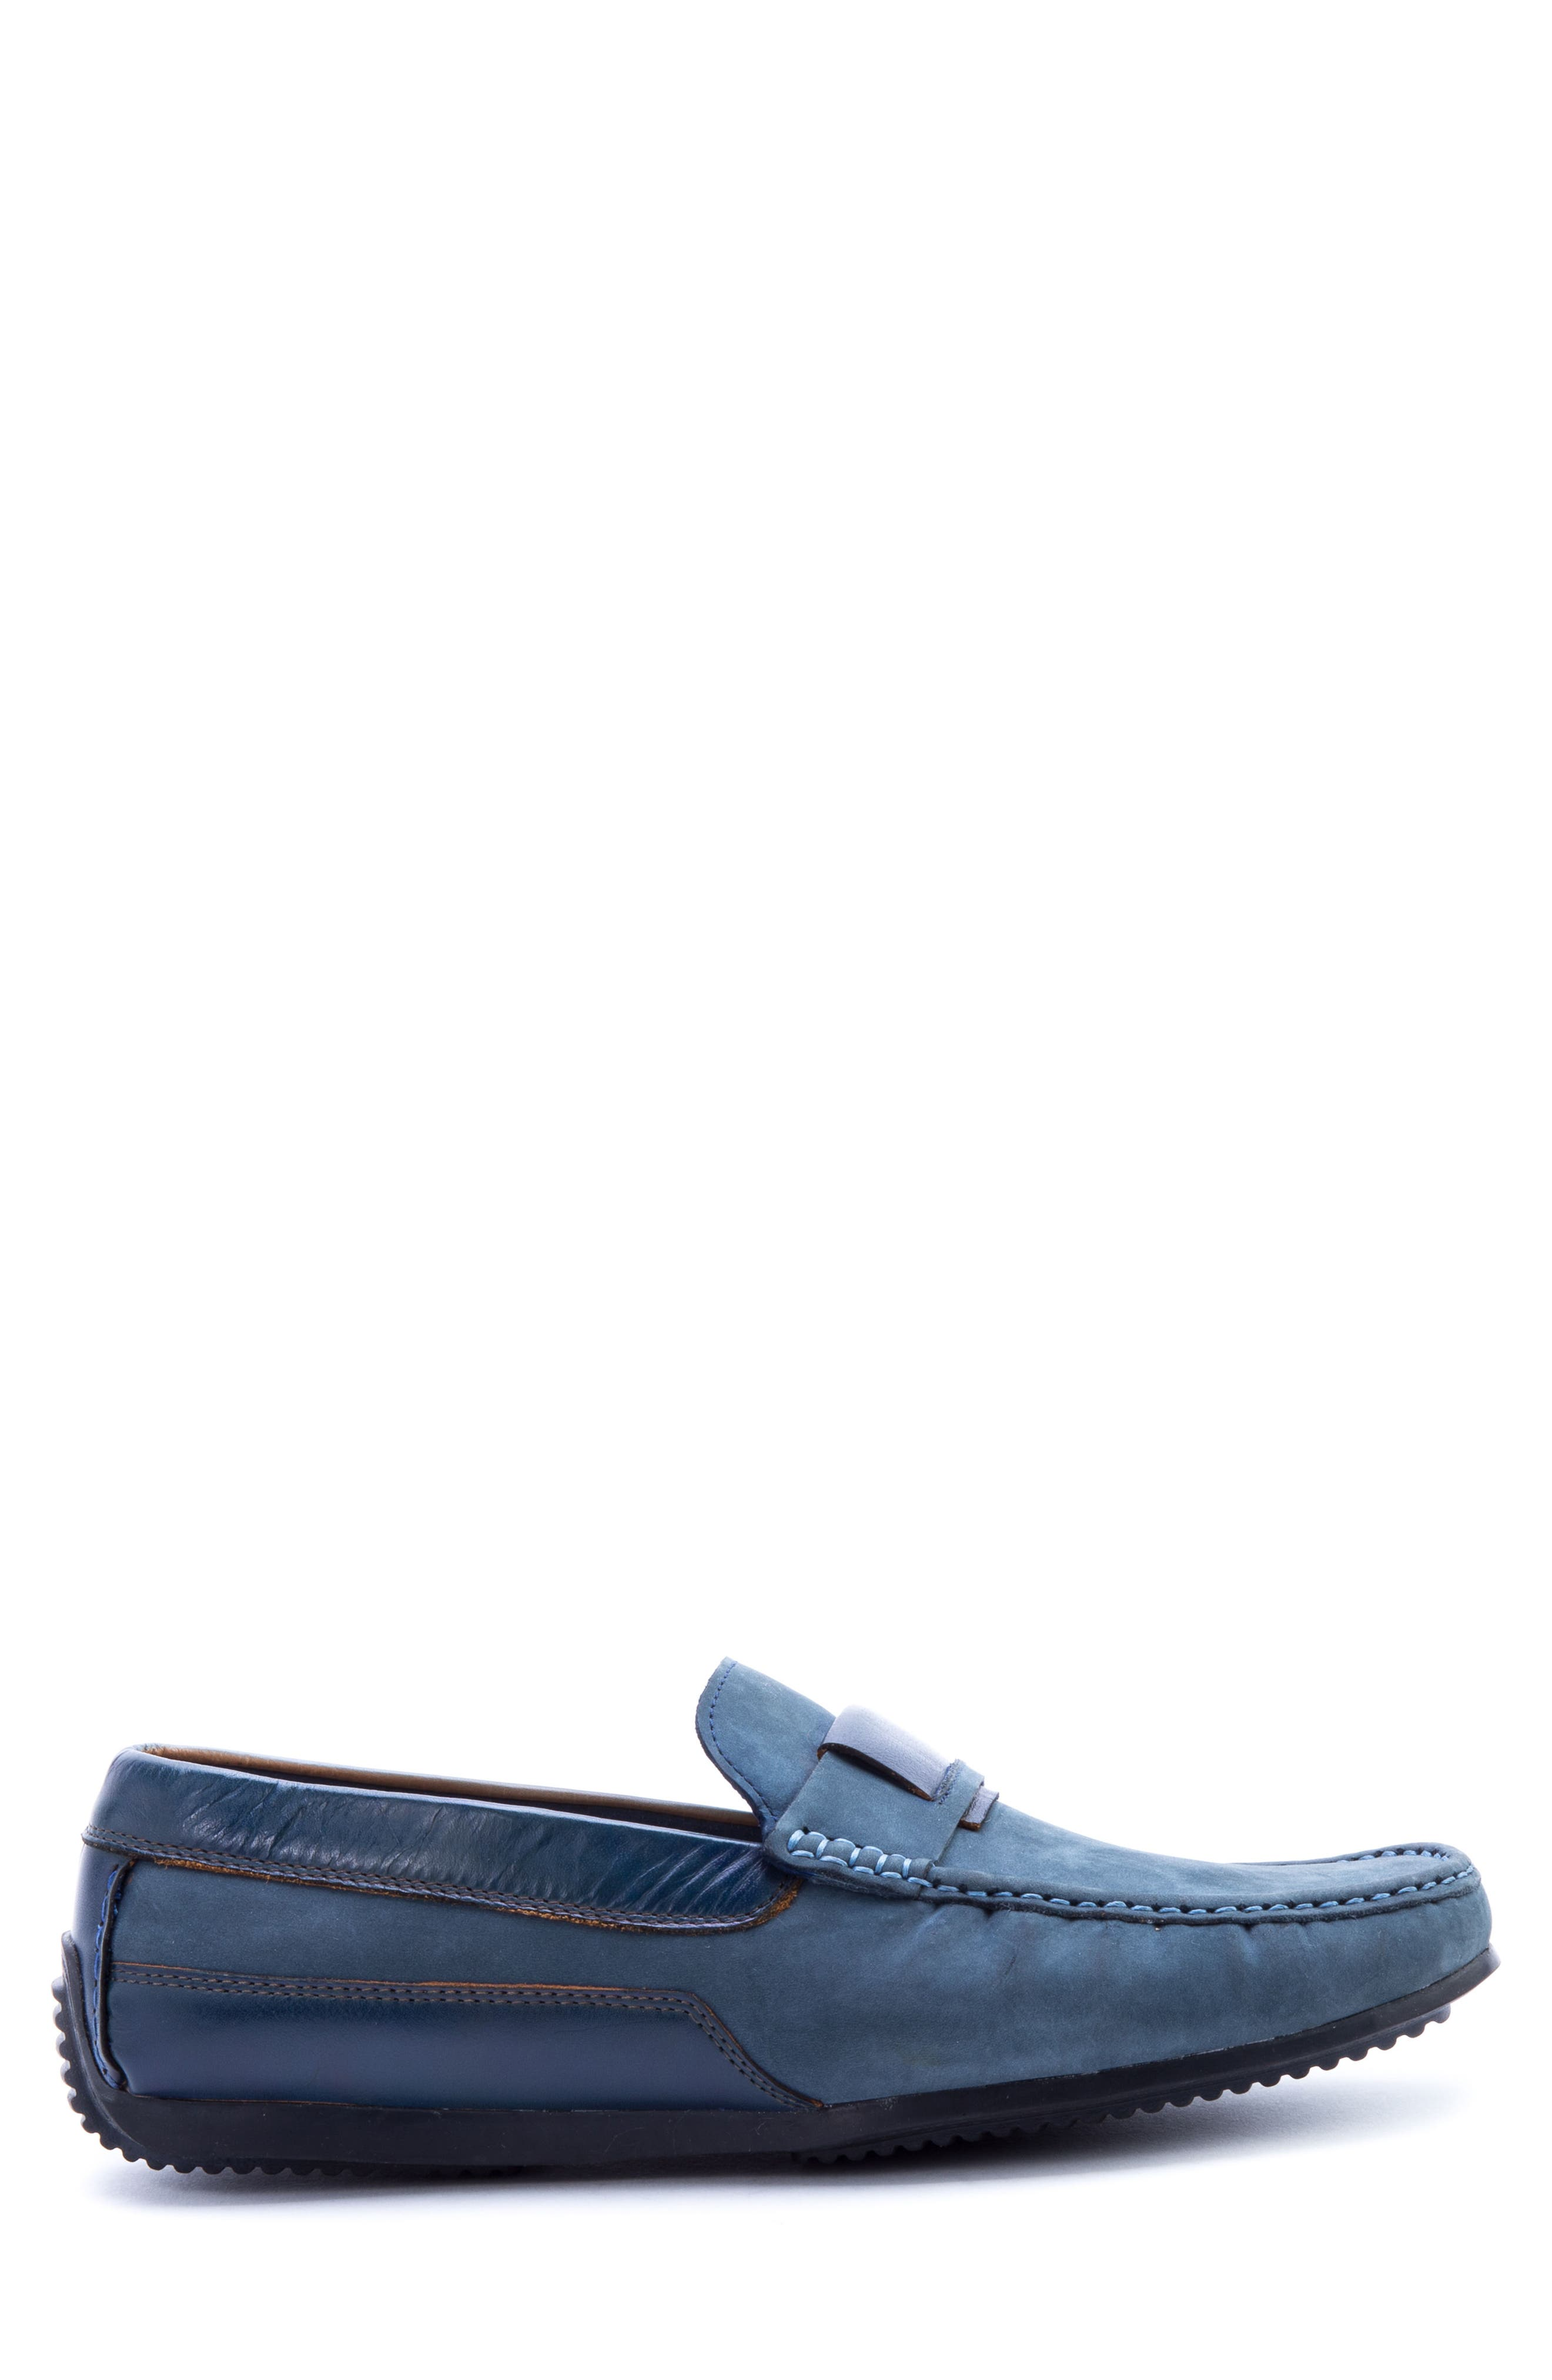 Seurat Driving Loafer,                             Alternate thumbnail 3, color,                             Blue Suede/ Leather